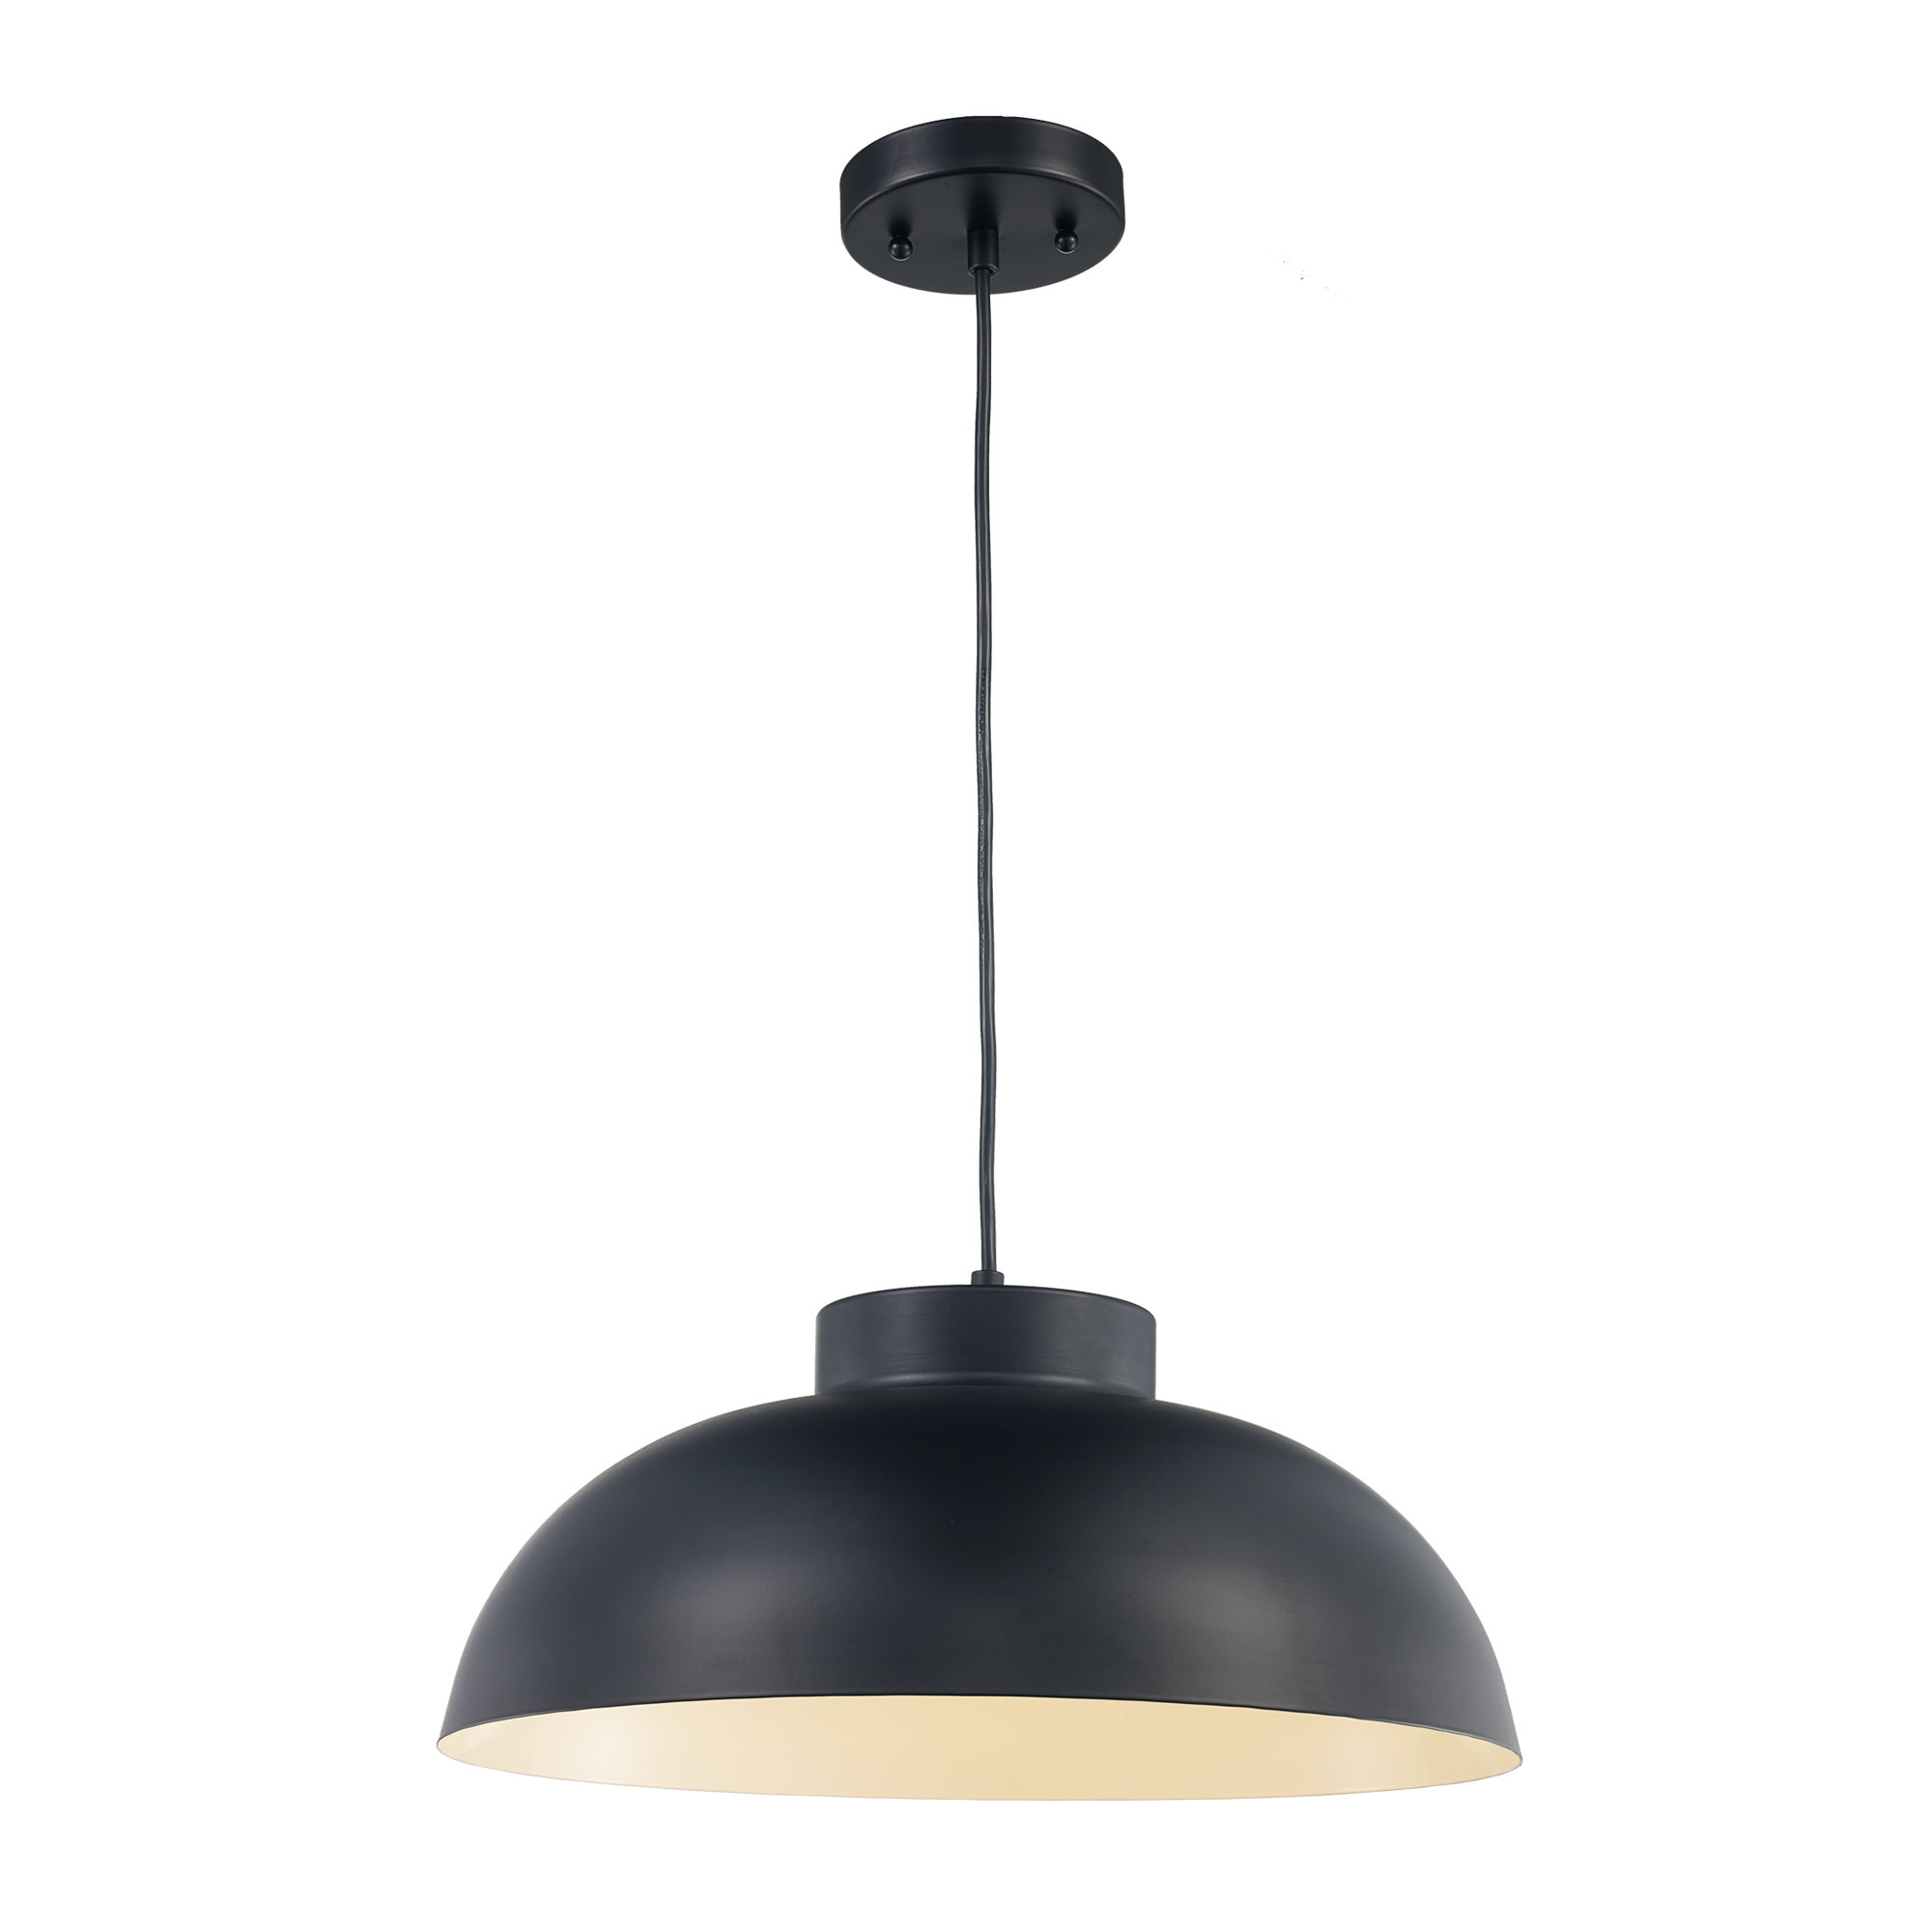 Lowes 1-Light Single Dome Pendant with regard to Conover 1-Light Dome Pendants (Image 19 of 30)